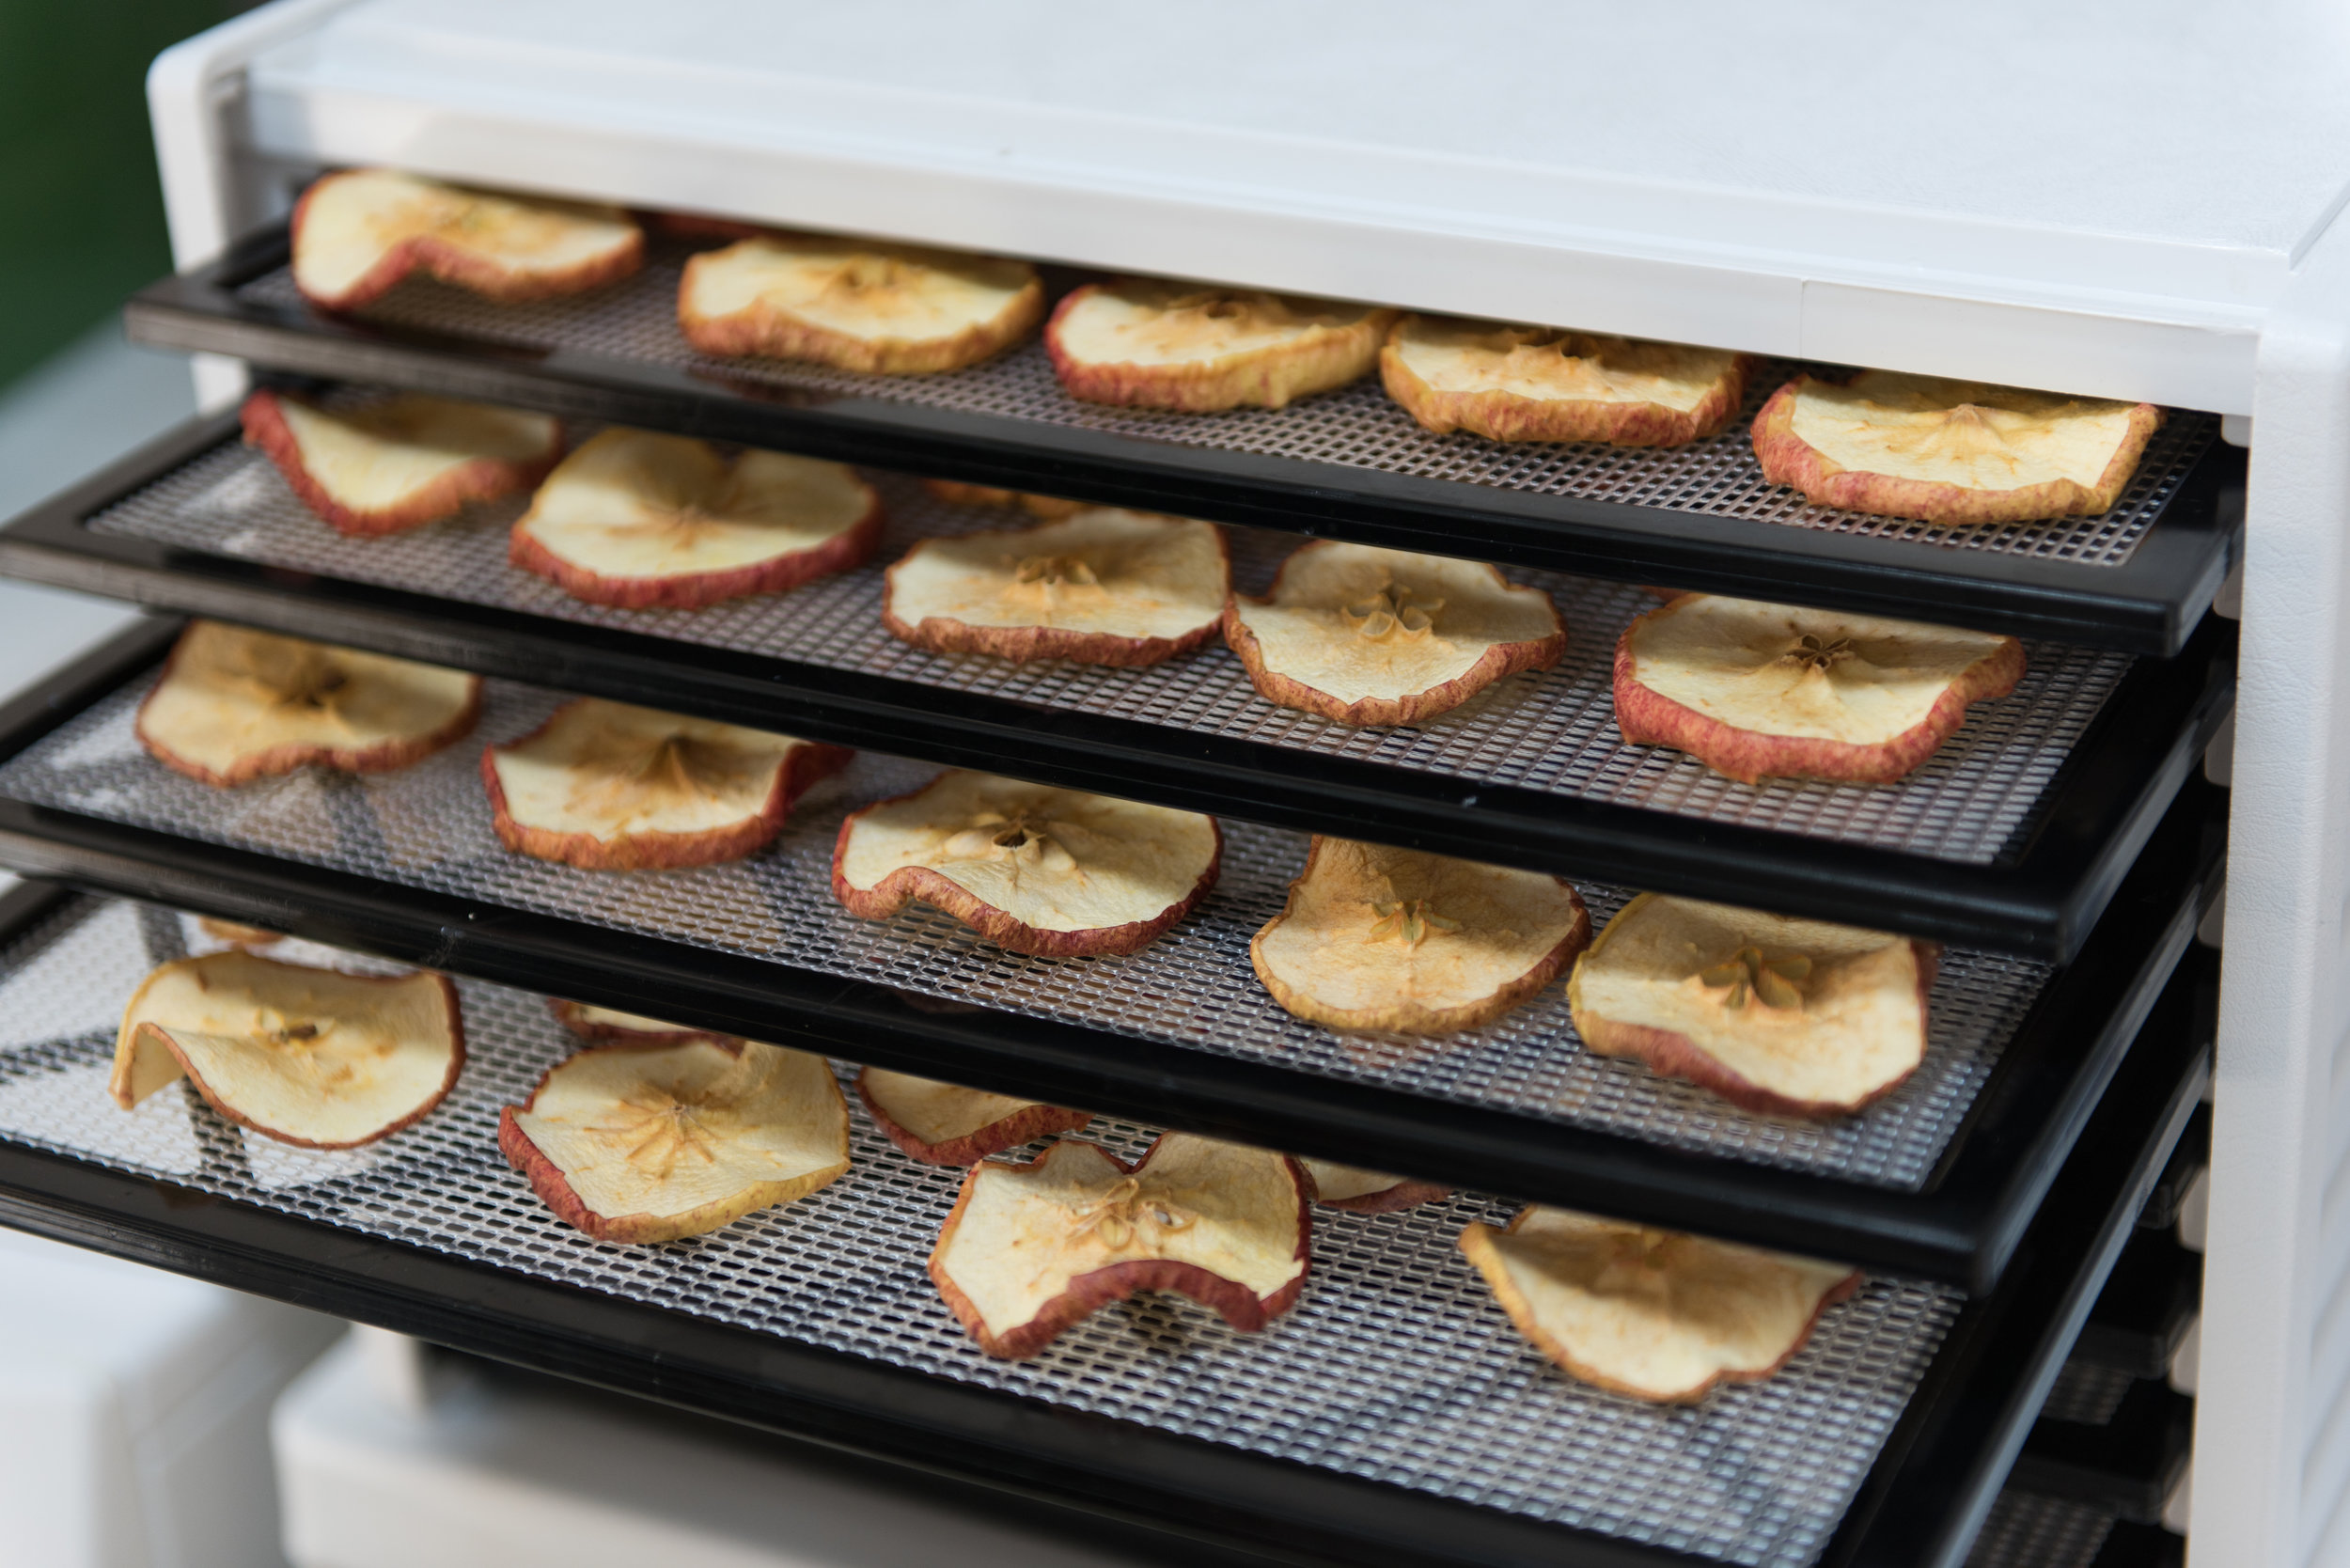 Dehydrating is done with many foods including fruits, vegetables, herbs, and meats